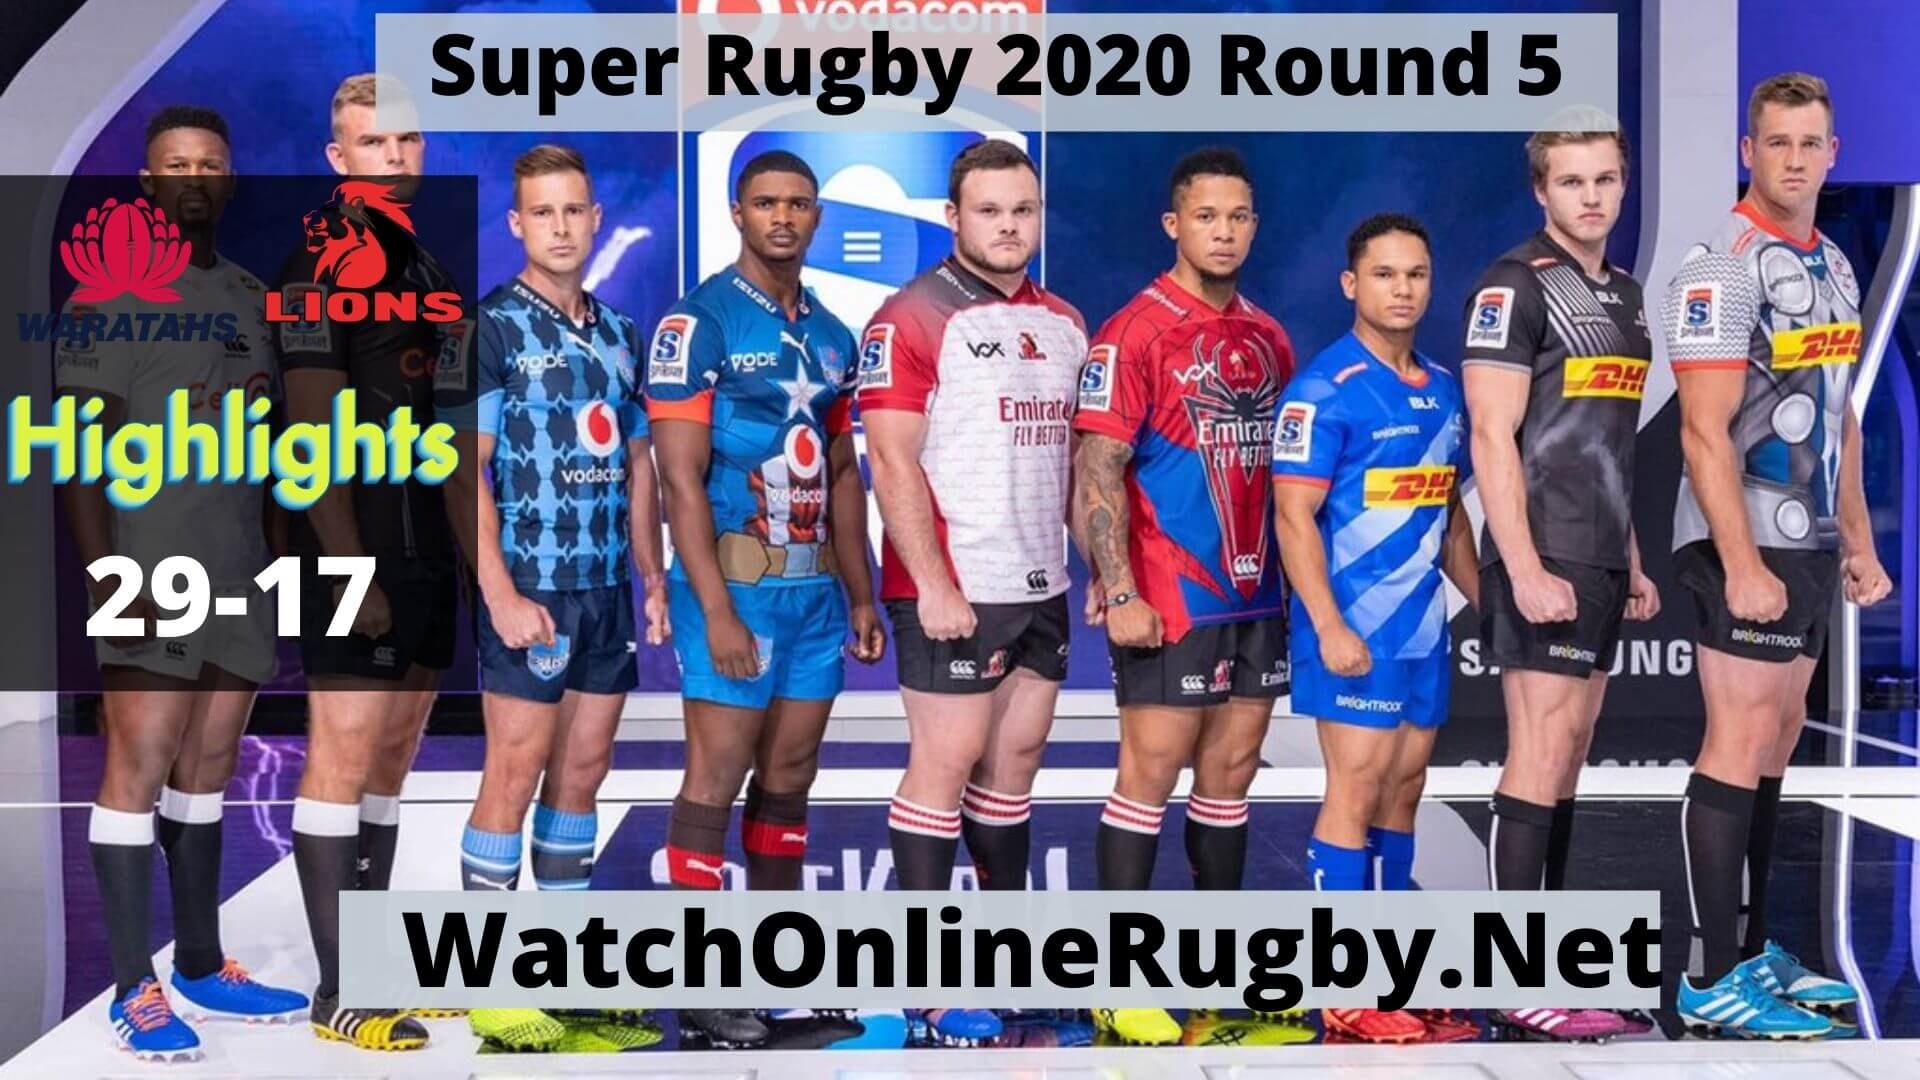 Waratahs Vs Lions Highlights 2020 Super Rugby Rd 5